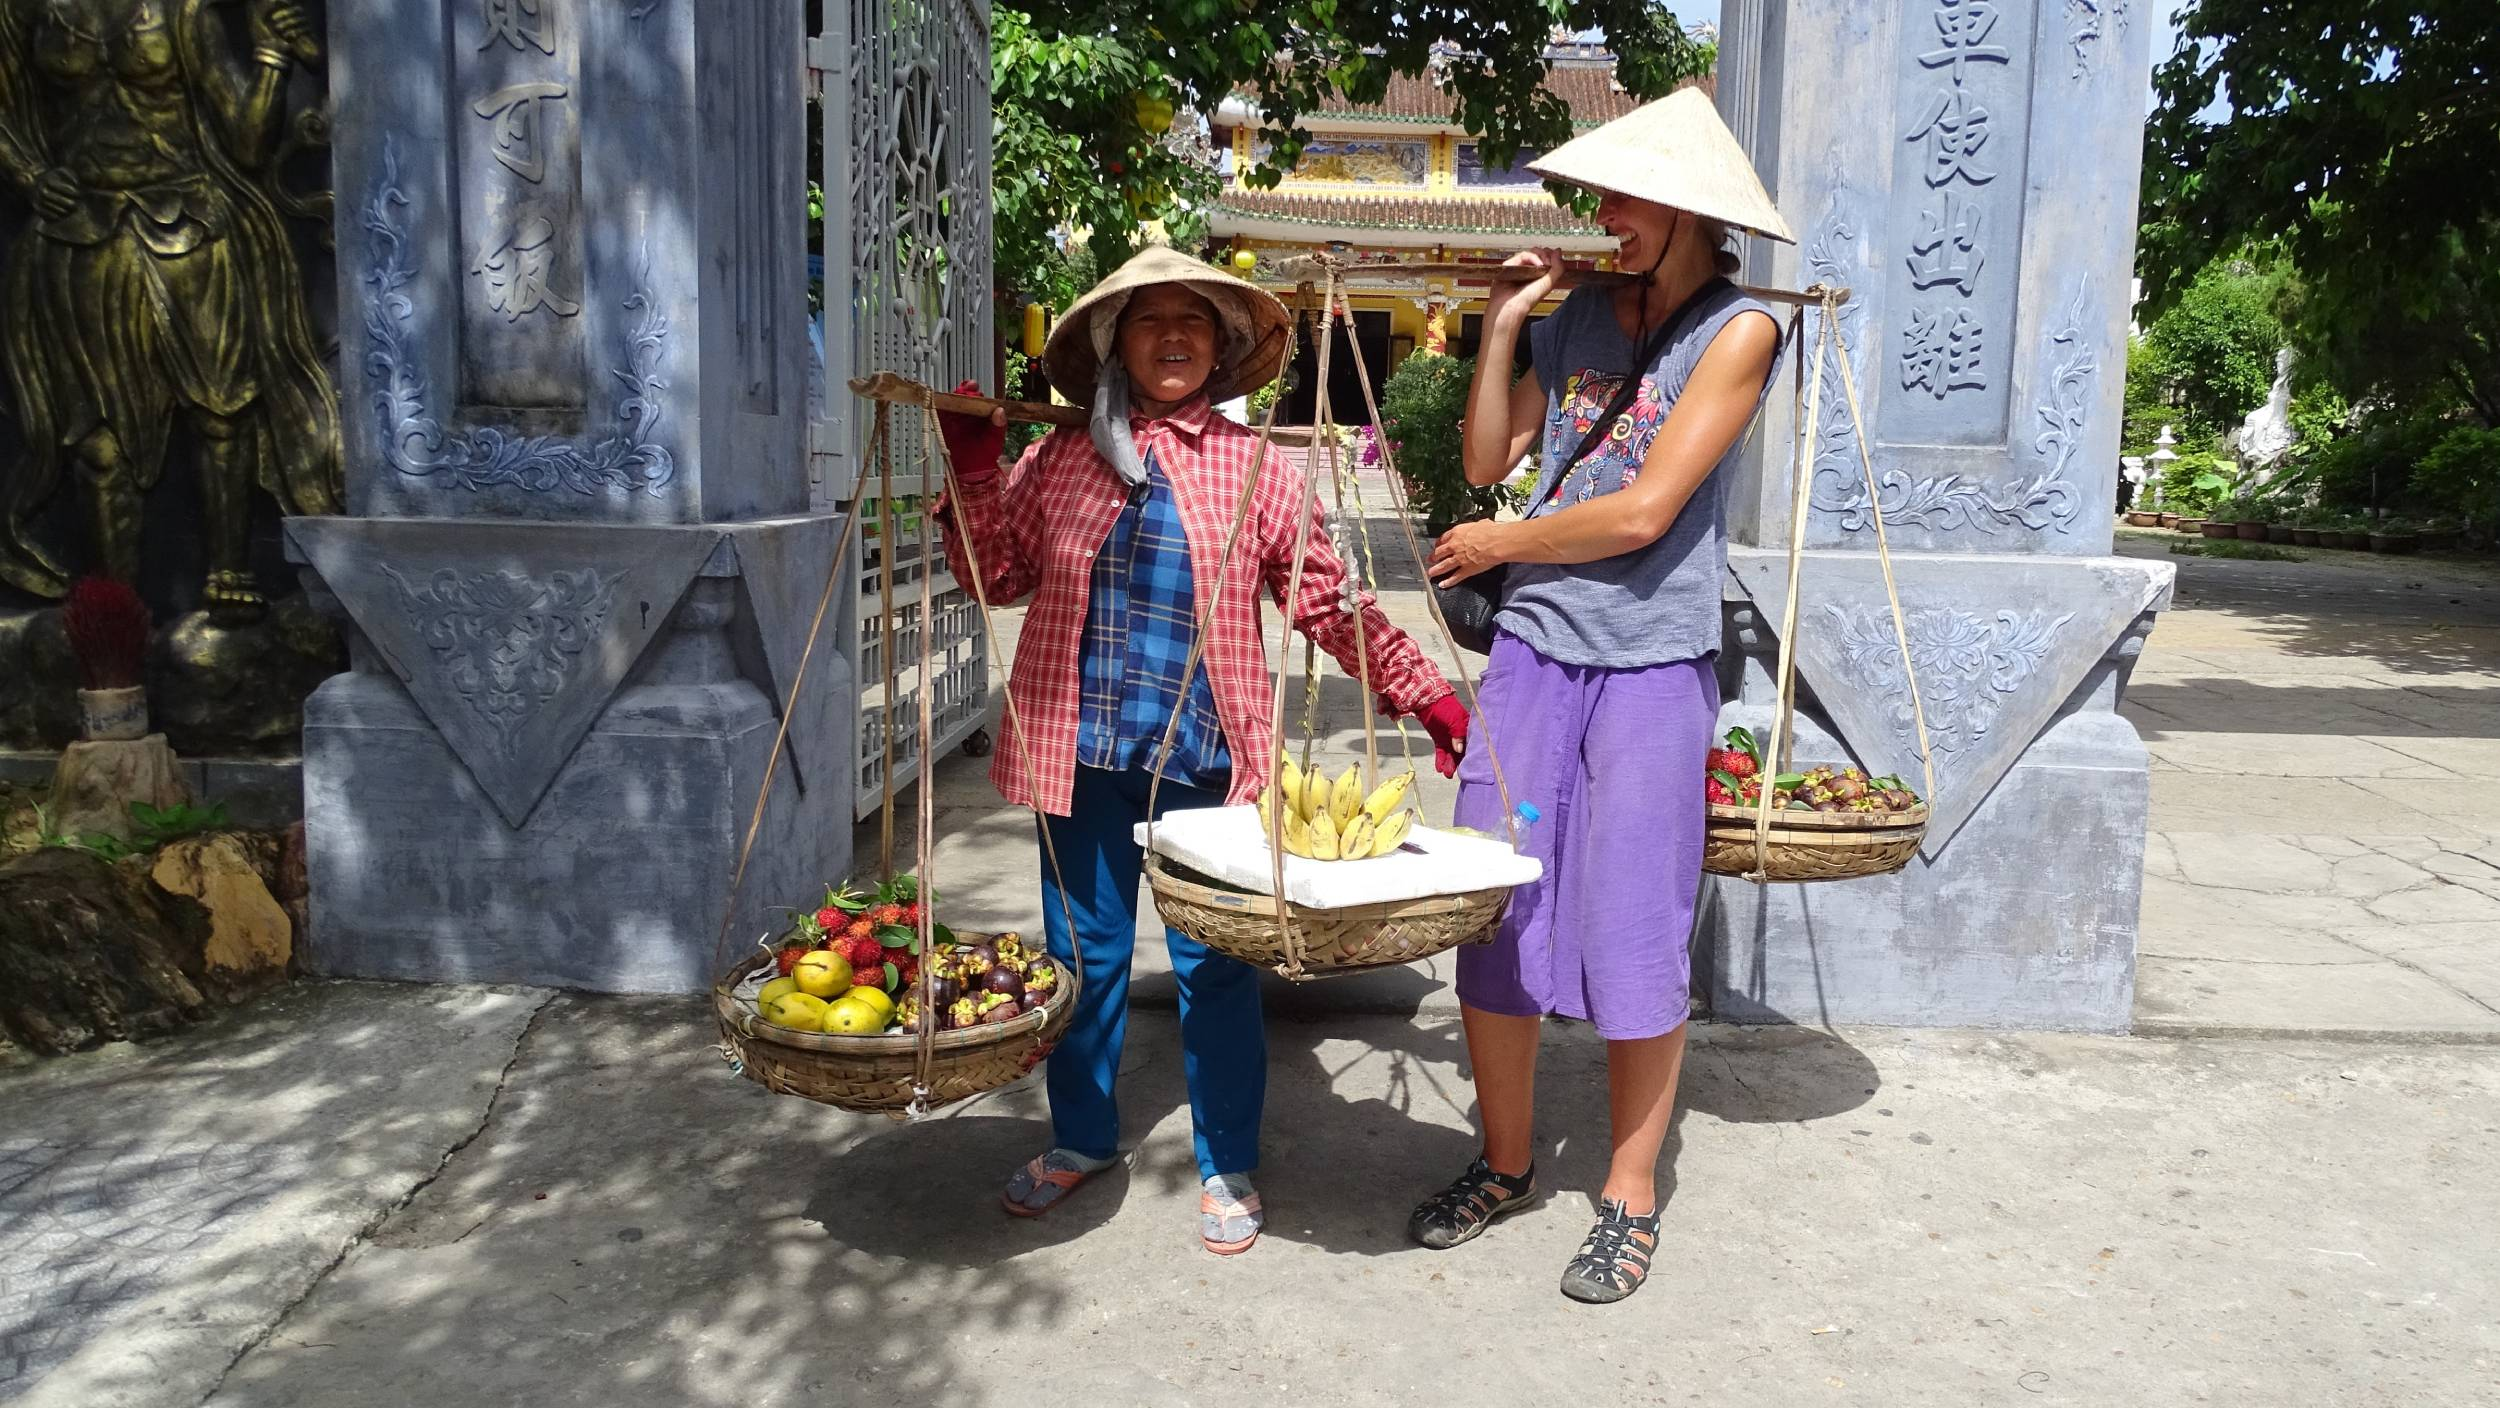 Author with a female fruit vendor, both in conical hats